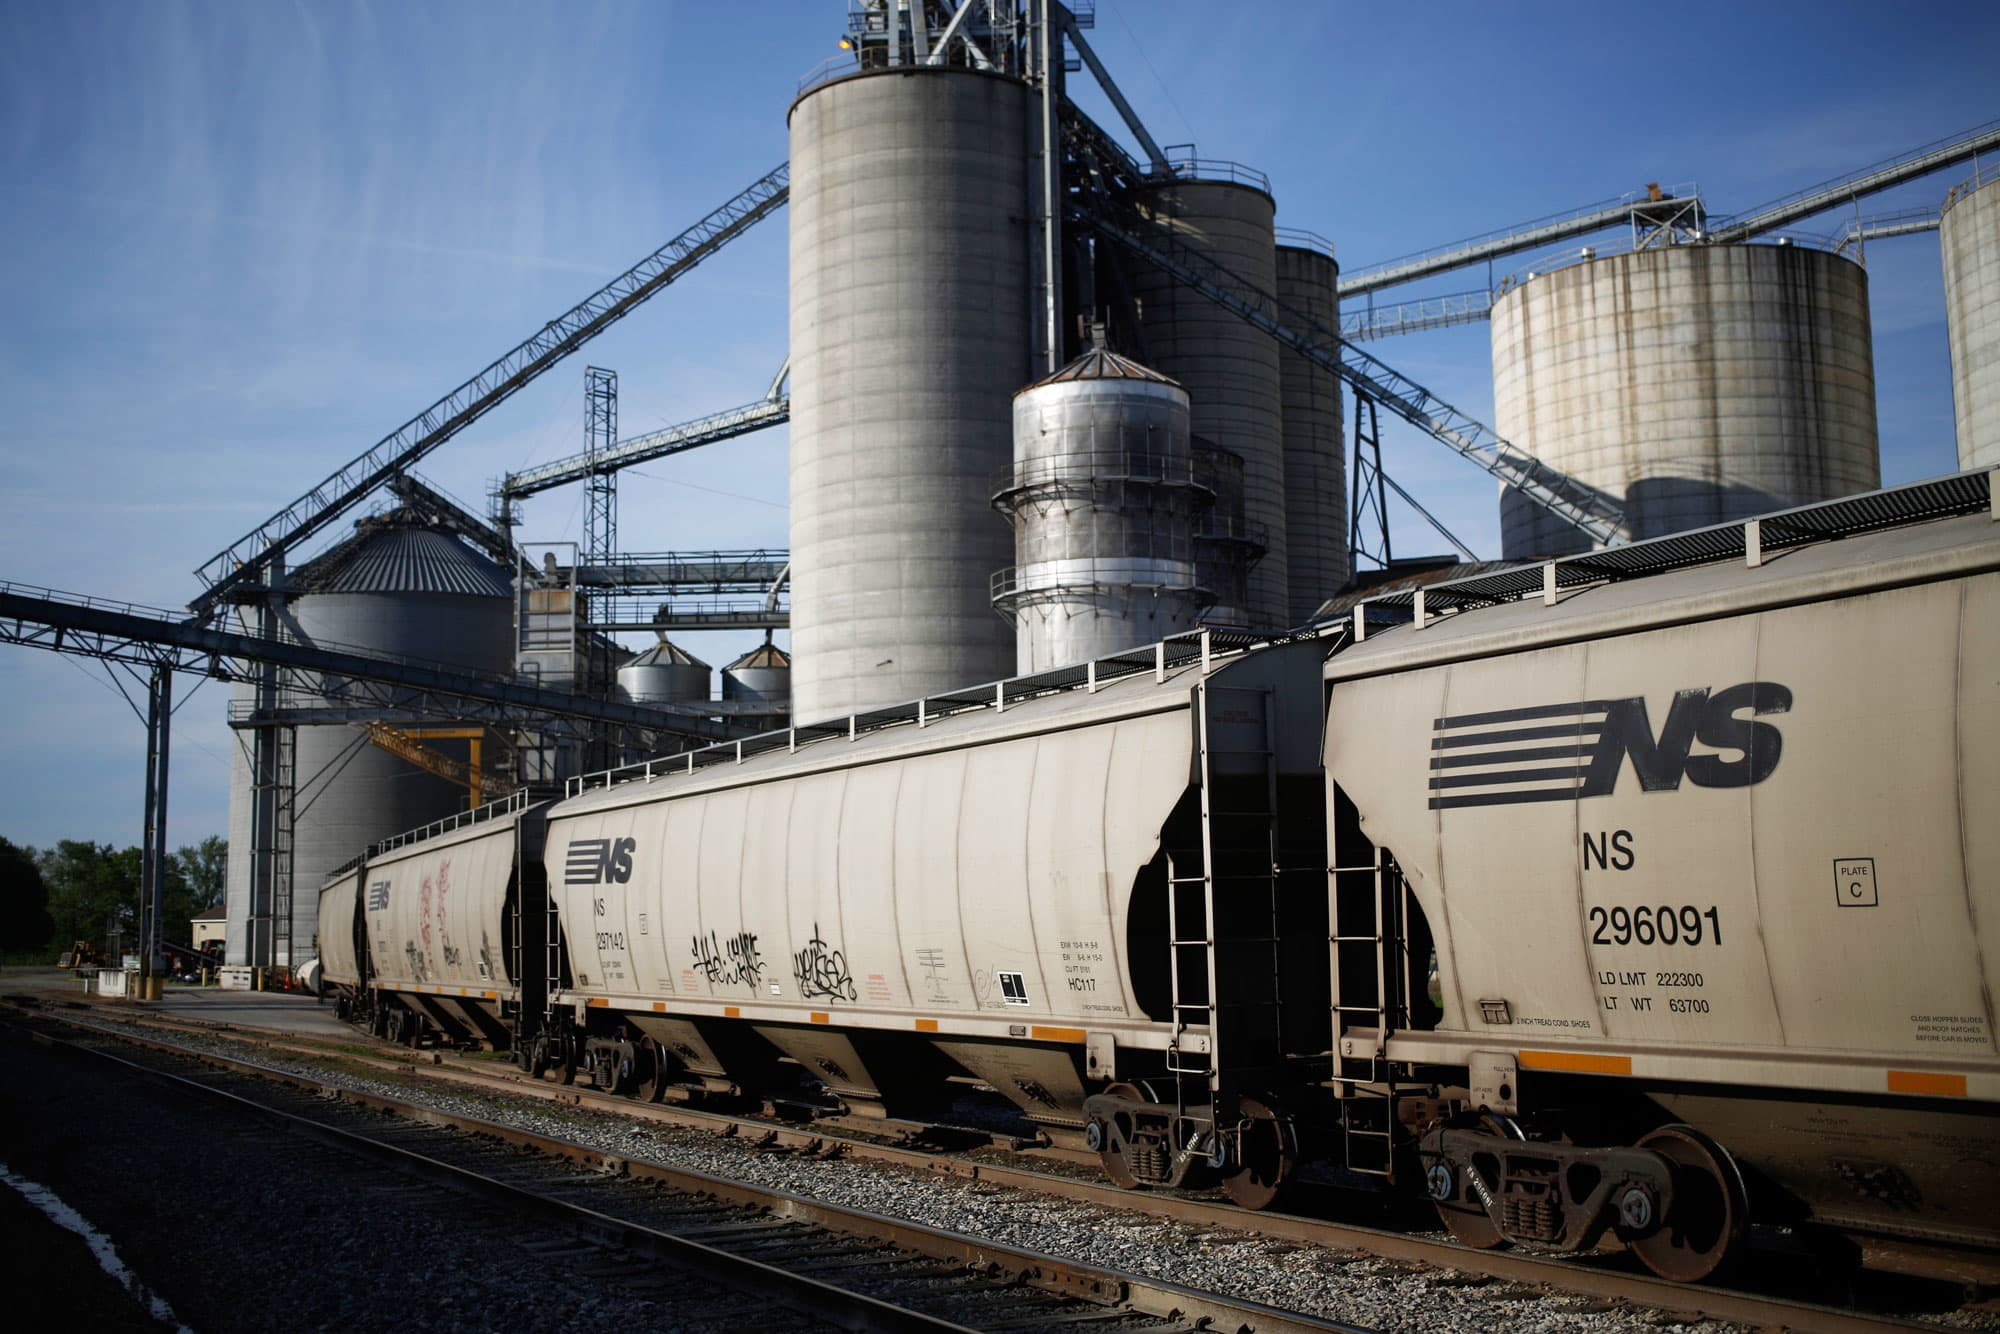 Norfolk Southern Ceo Reveals The Secret To Making Money With Cargoes